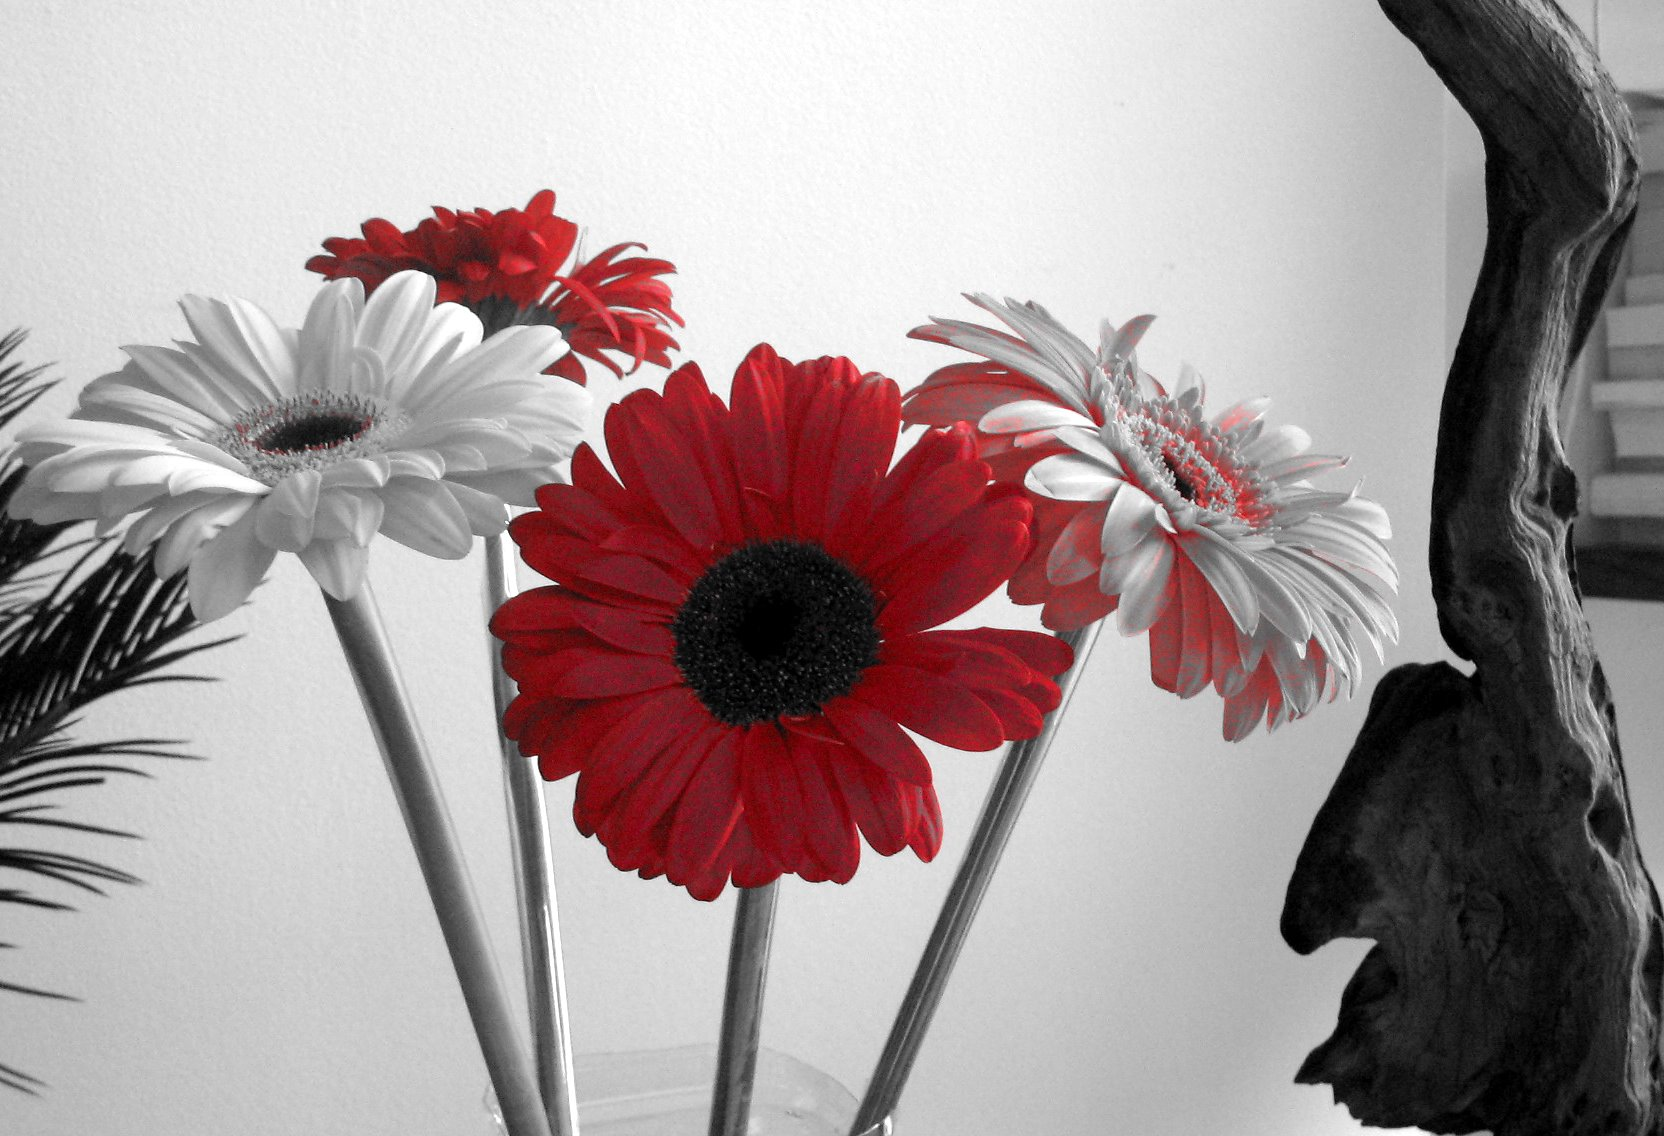 Black and white flowers 7737 1664x1136 px hdwallsource black and white flowers 7737 mightylinksfo Gallery